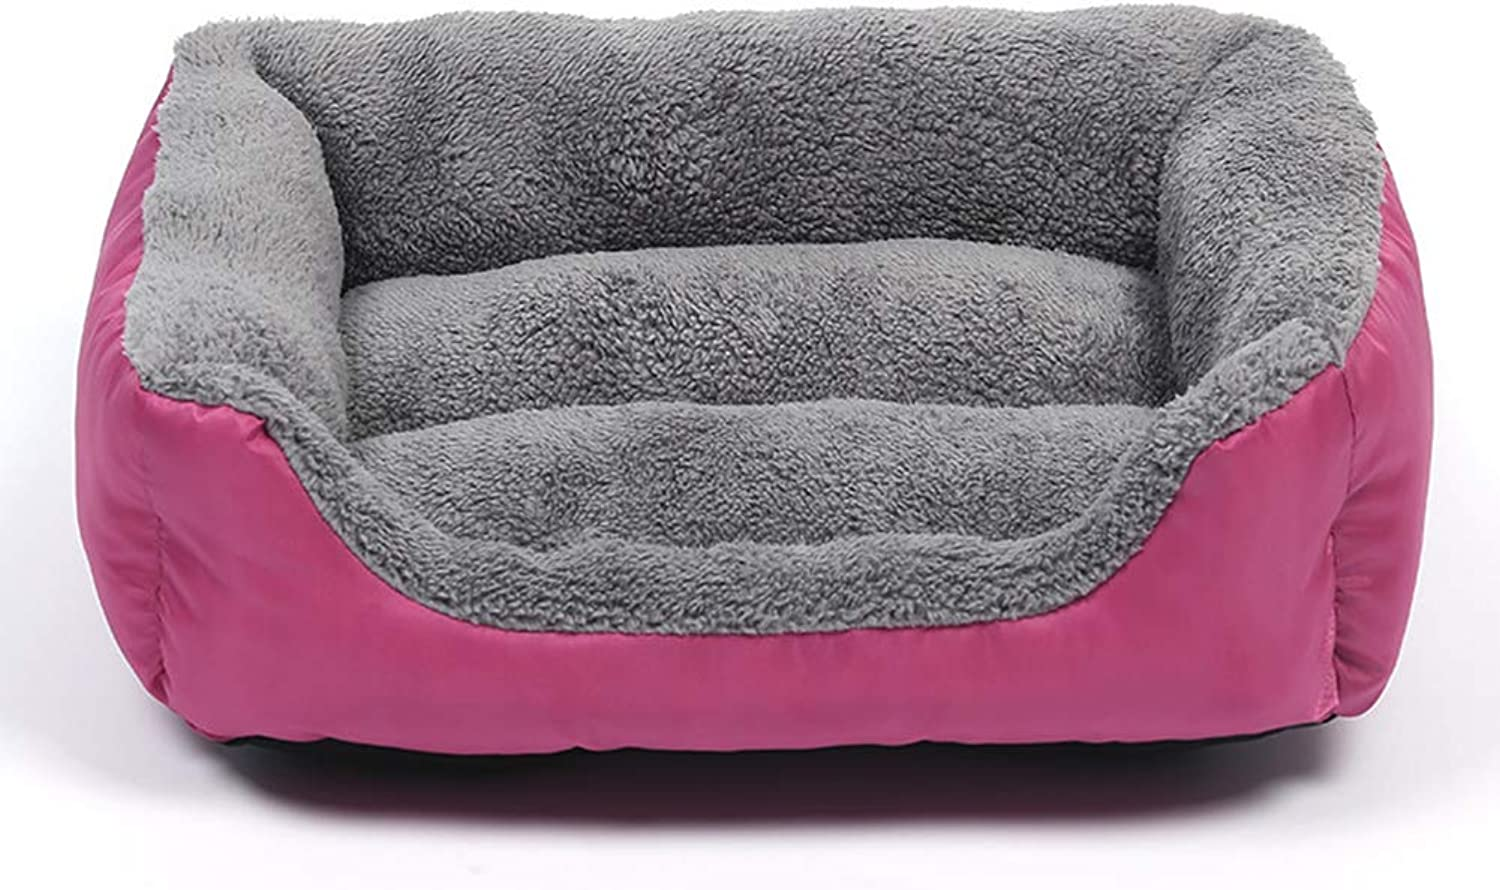 Candycolord Sofa Pet Nest, HighElastic Pp Cotton Soft Cotton Linen Removable Pet Bed, a Variety of Specifications to Choose from,XXXL